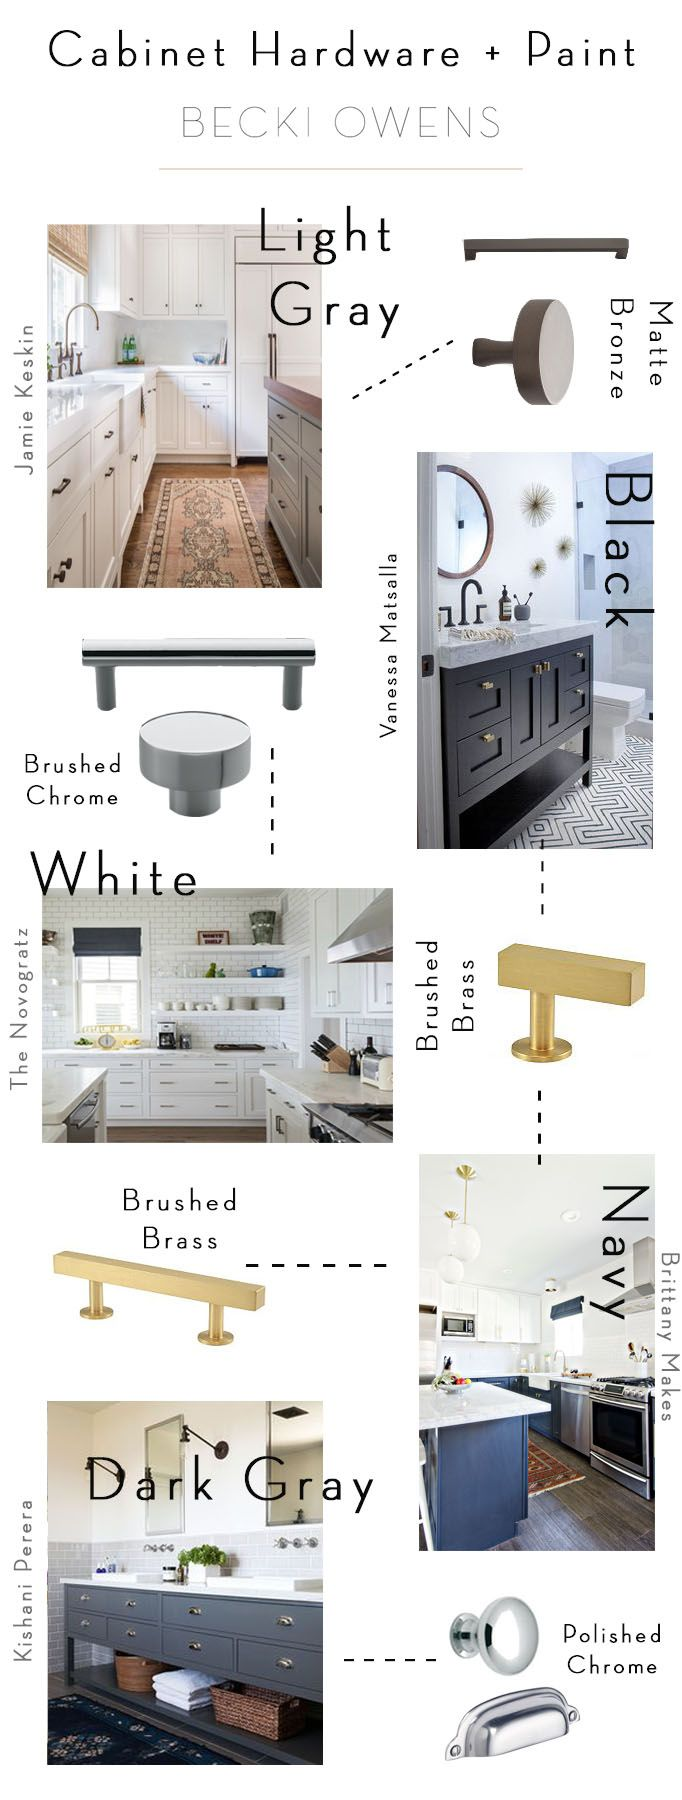 Perfect Pairs: Cabinet Hardware and Paint - Becki Owens | Kitchen ...